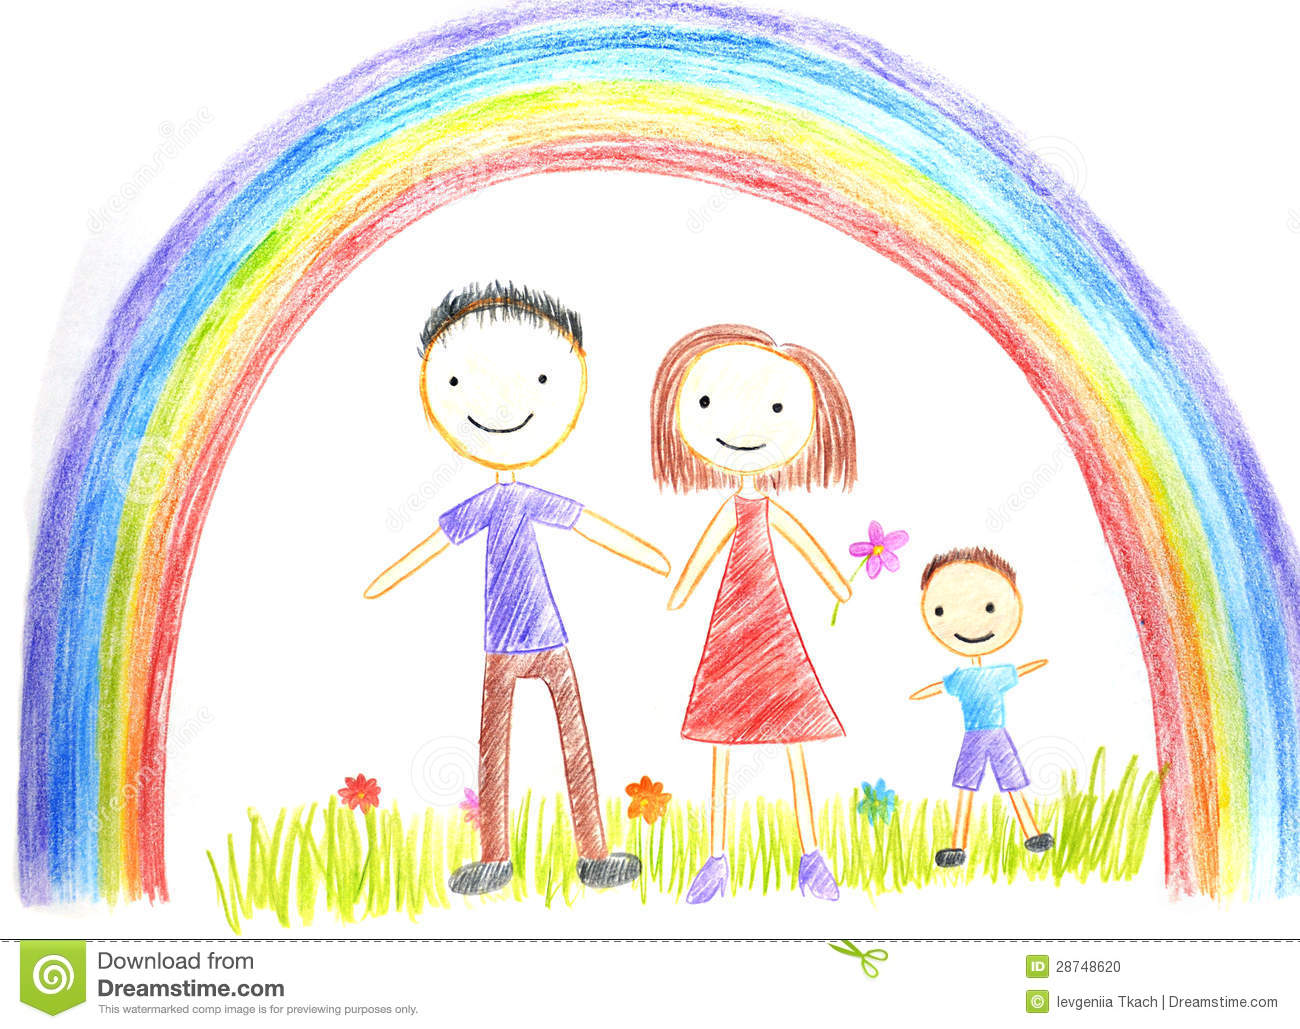 Kids Drawing Happy Family Stock Illustration. Illustration Of Group - 28748620